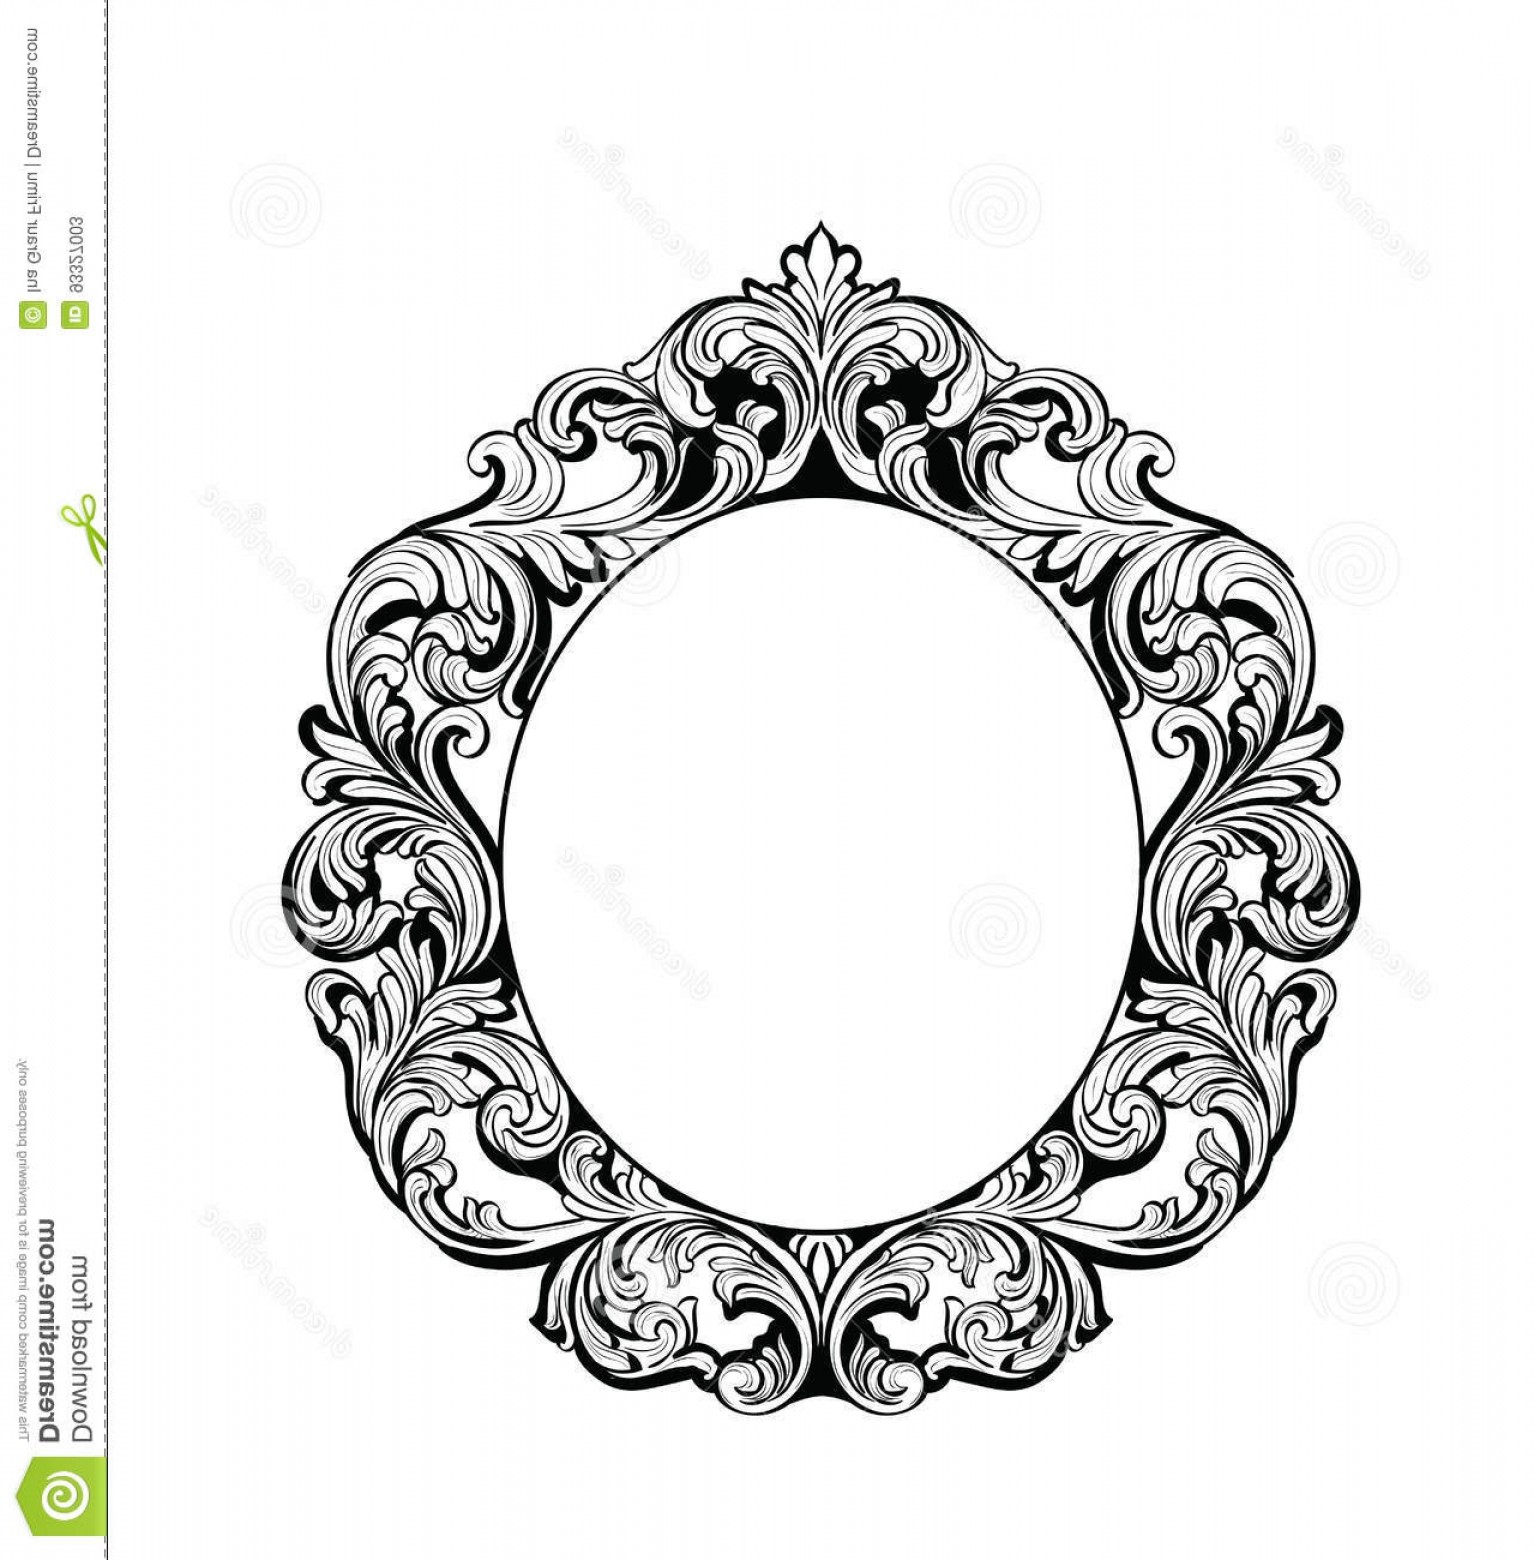 Luxury Round Frame Vector: Stock Illustration Imperial Baroque Mirror Round Frame Vector French Luxury Rich Intricate Ornaments Victorian Royal Style Decor Image